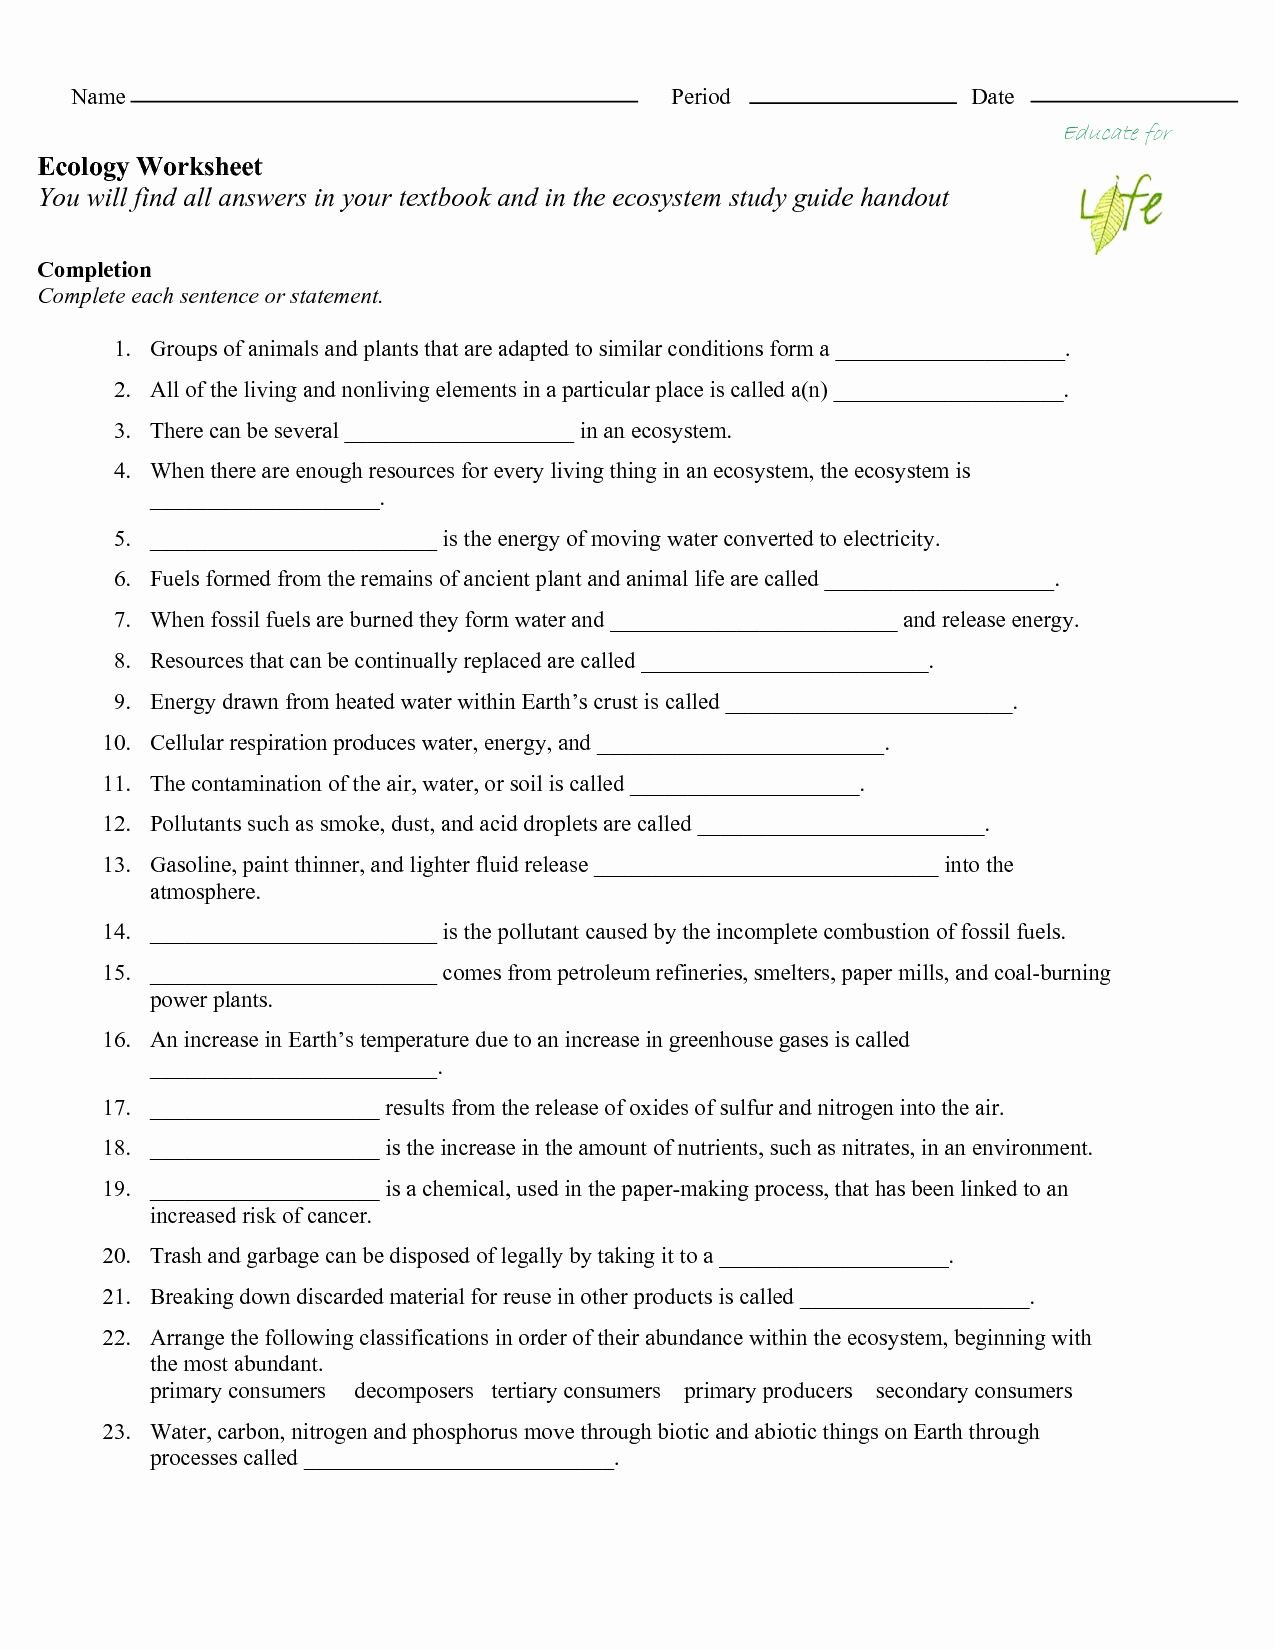 Ecology Worksheets Middle School Stages Ecological Succession Worksheet